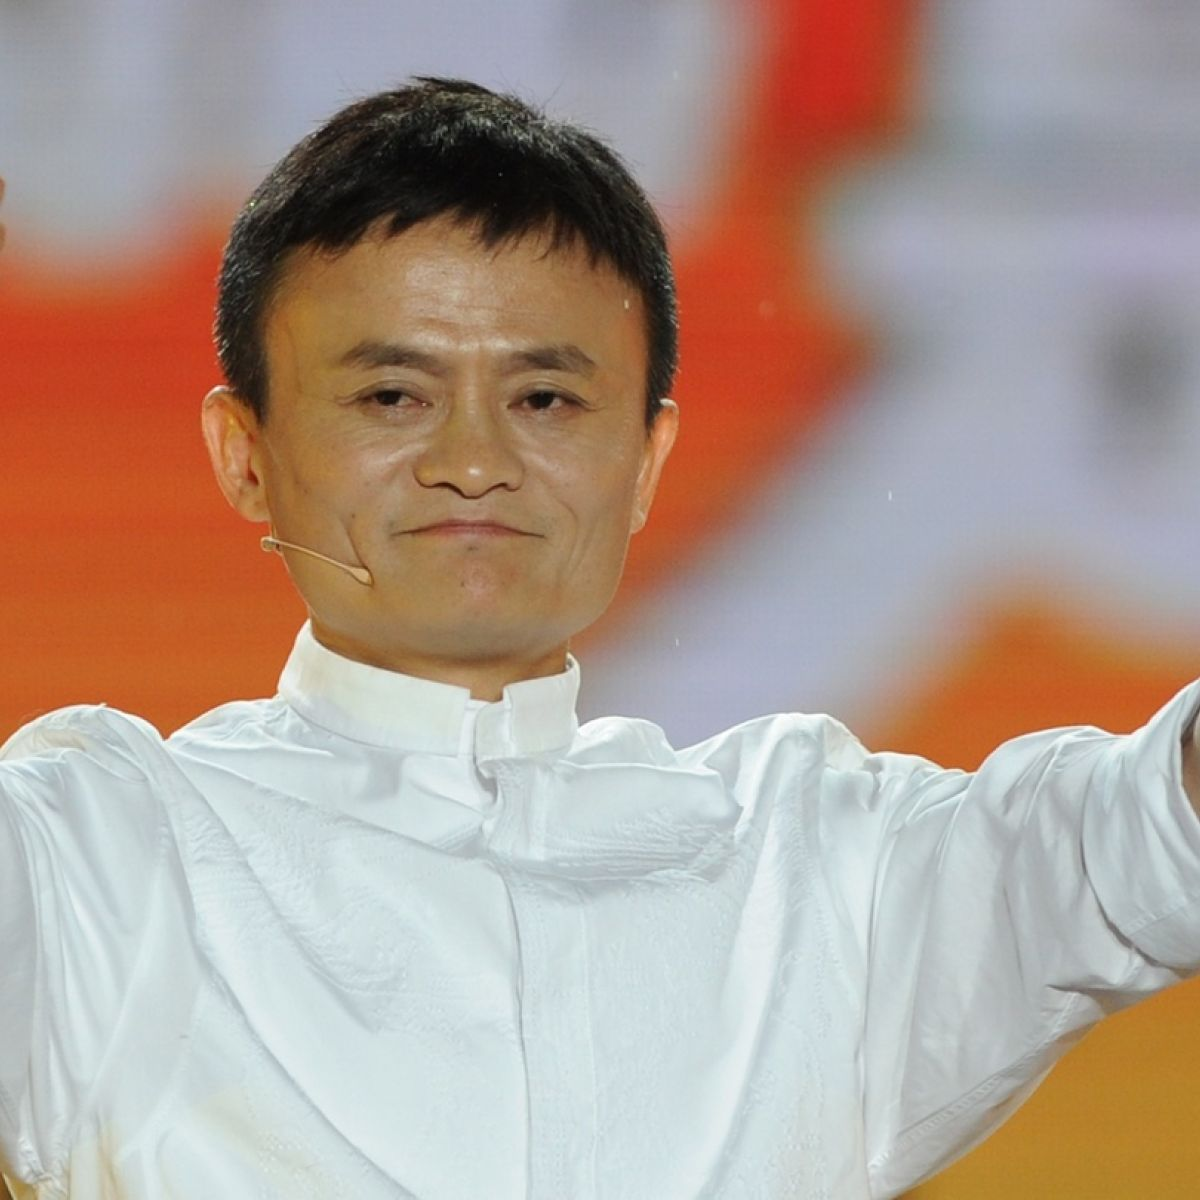 Working 9 To 9 Jack Ma Says Workers Should Do 12 Hour Days Six Days A Week